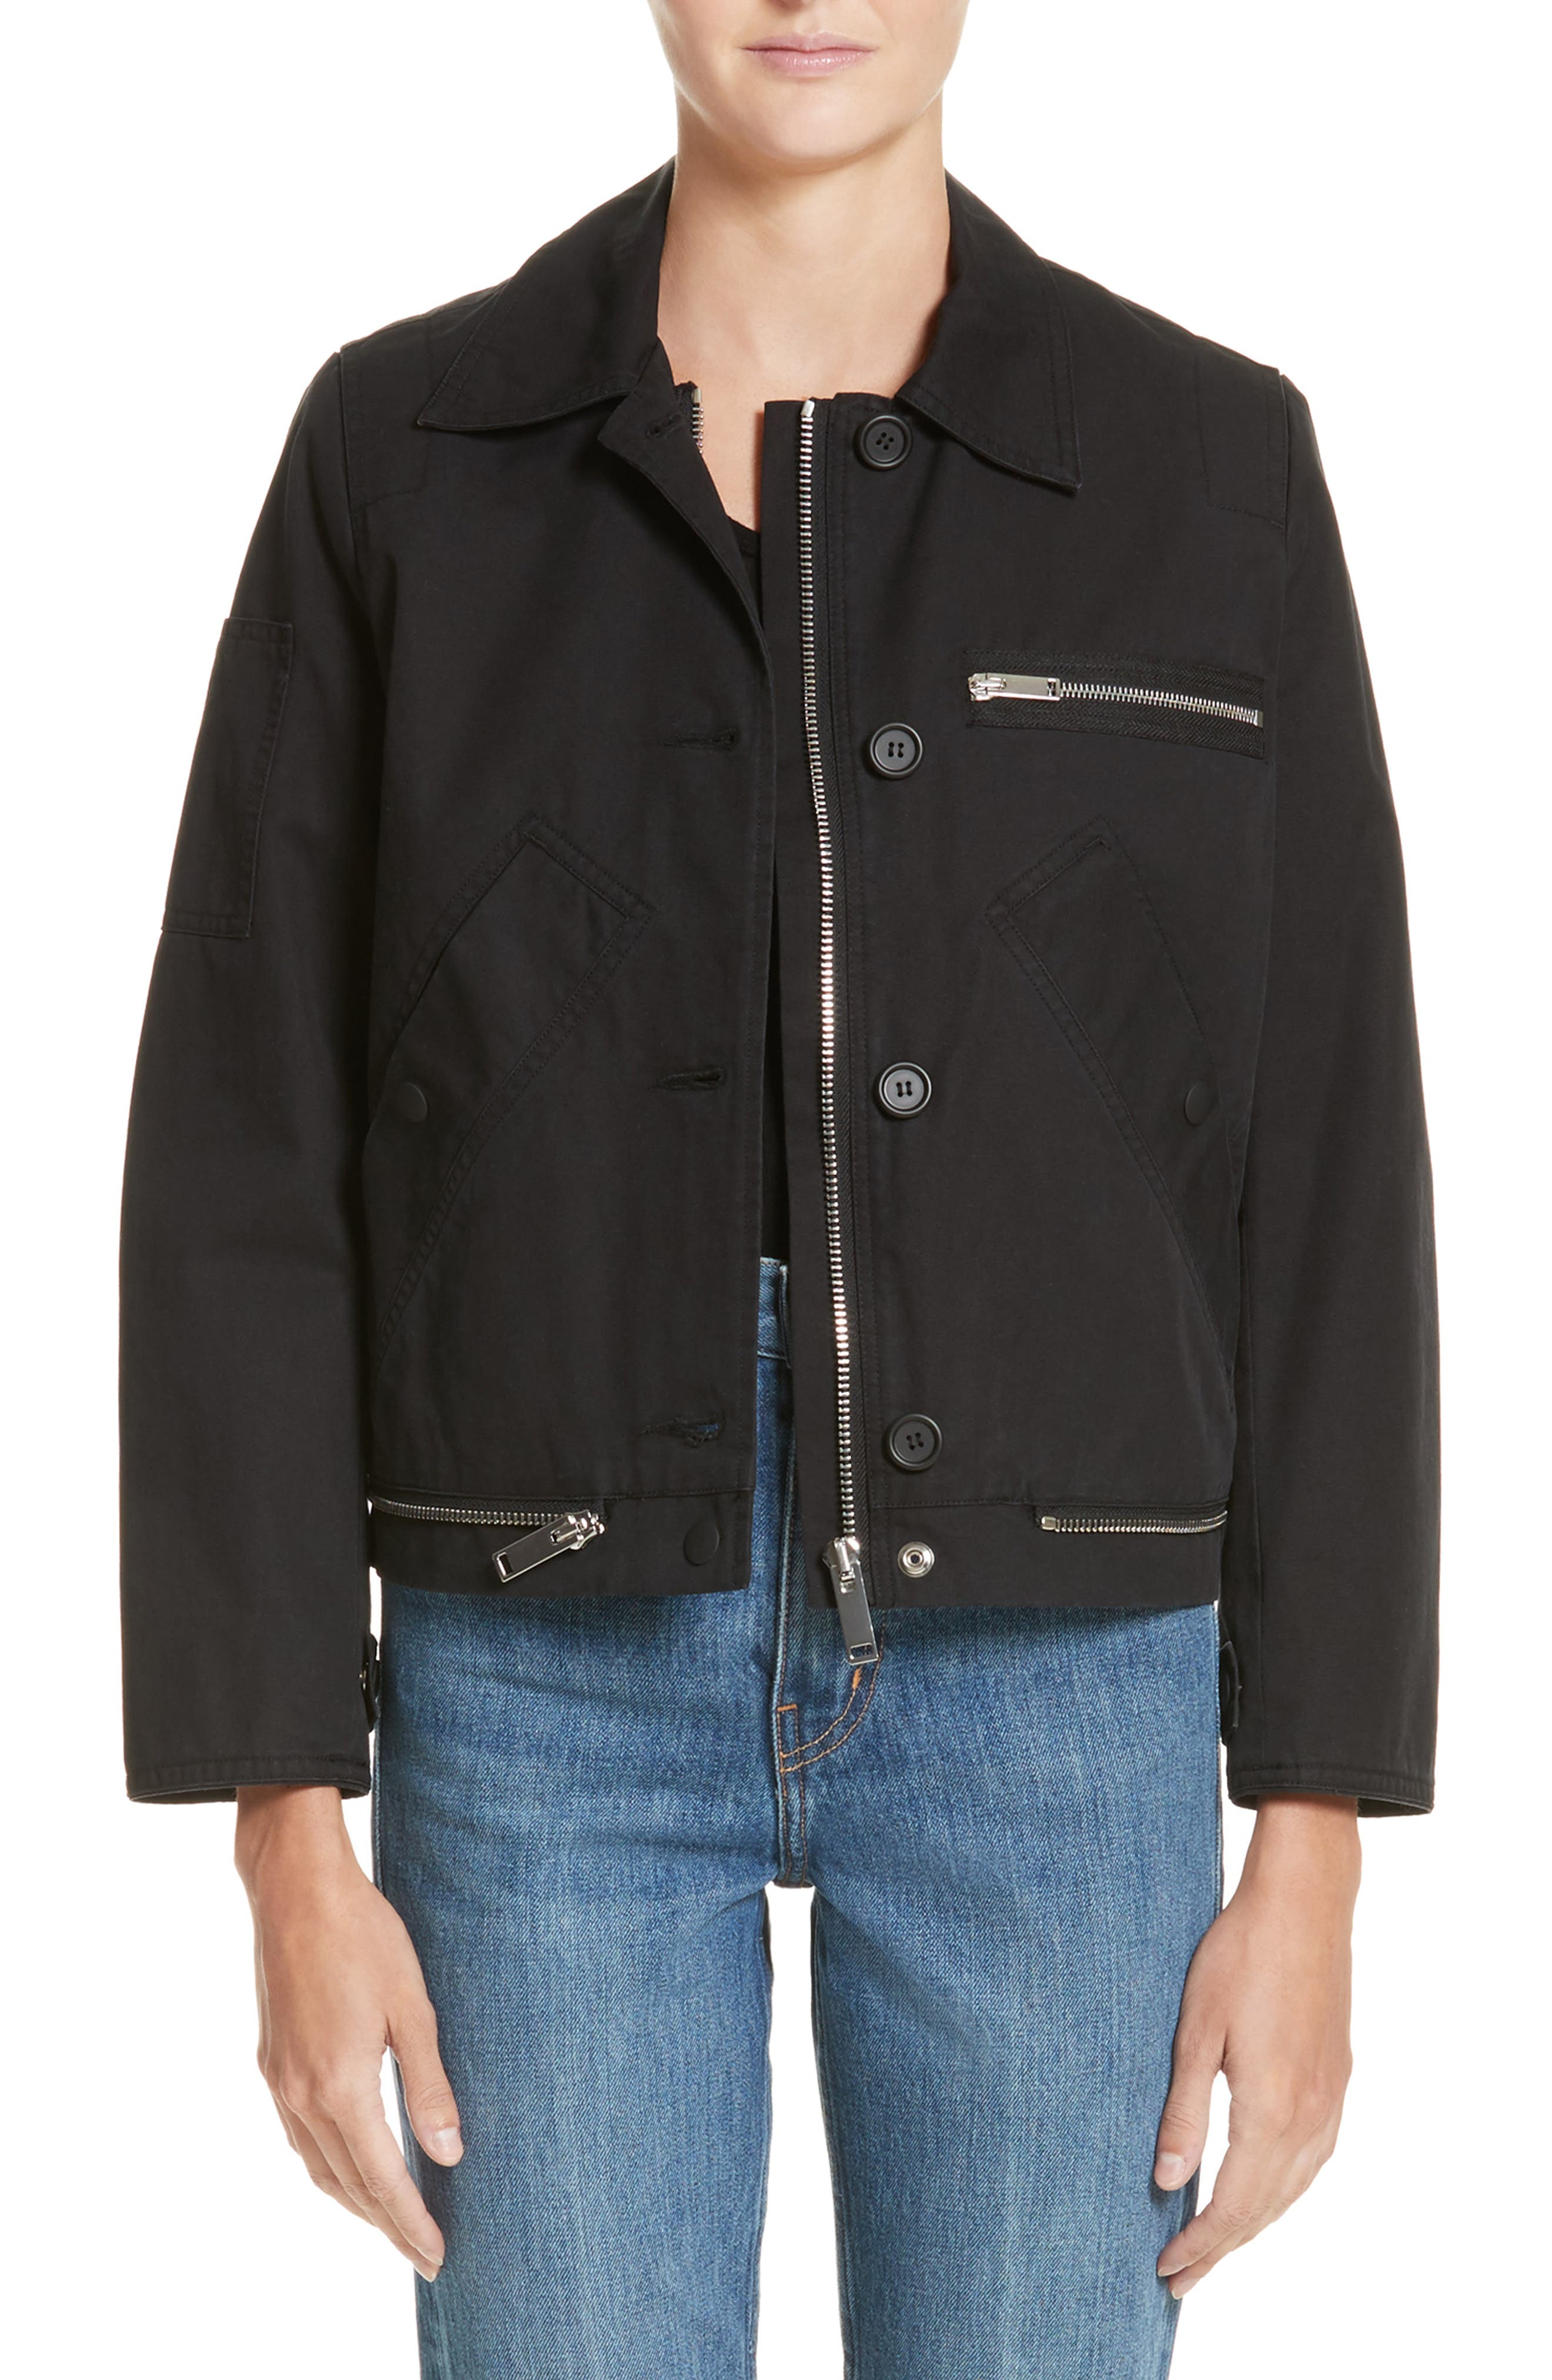 PSWL Washed Cotton Military Jacket,                         Main,                         color, Black